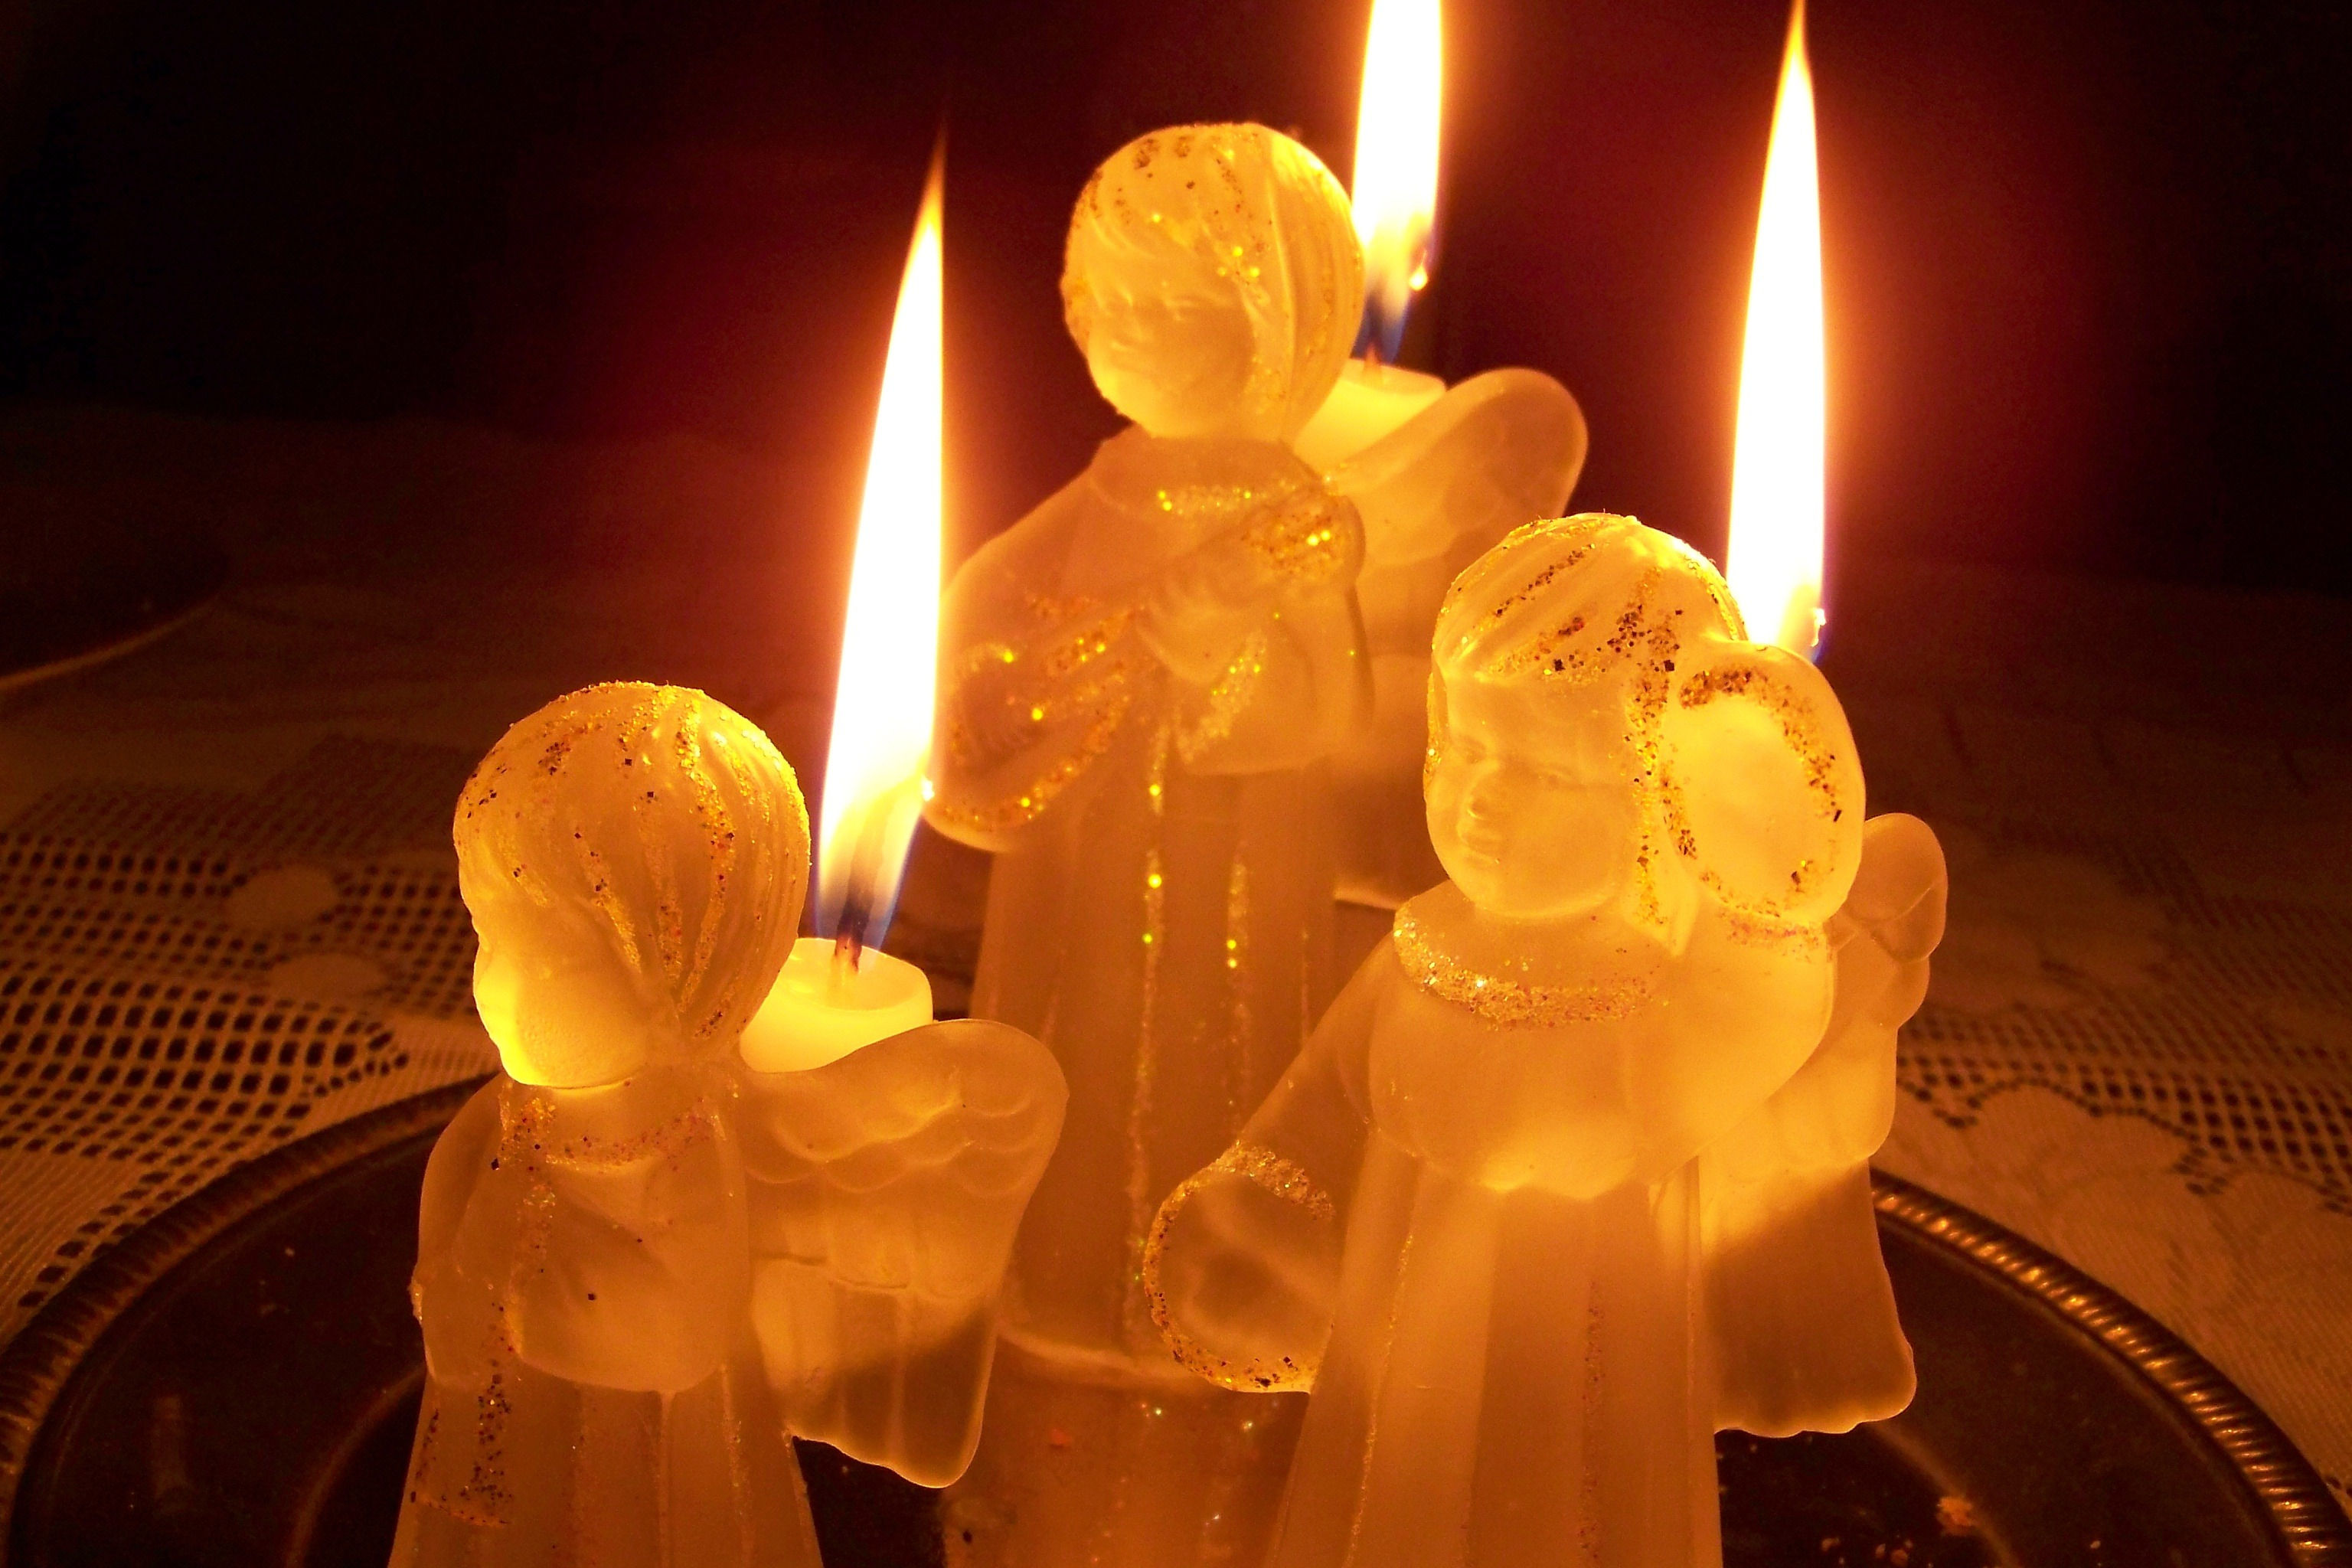 light-night-flower-glass-peace-yellow-candle-lighting-candlestick-christmas-decoration-angel-candles-1007731